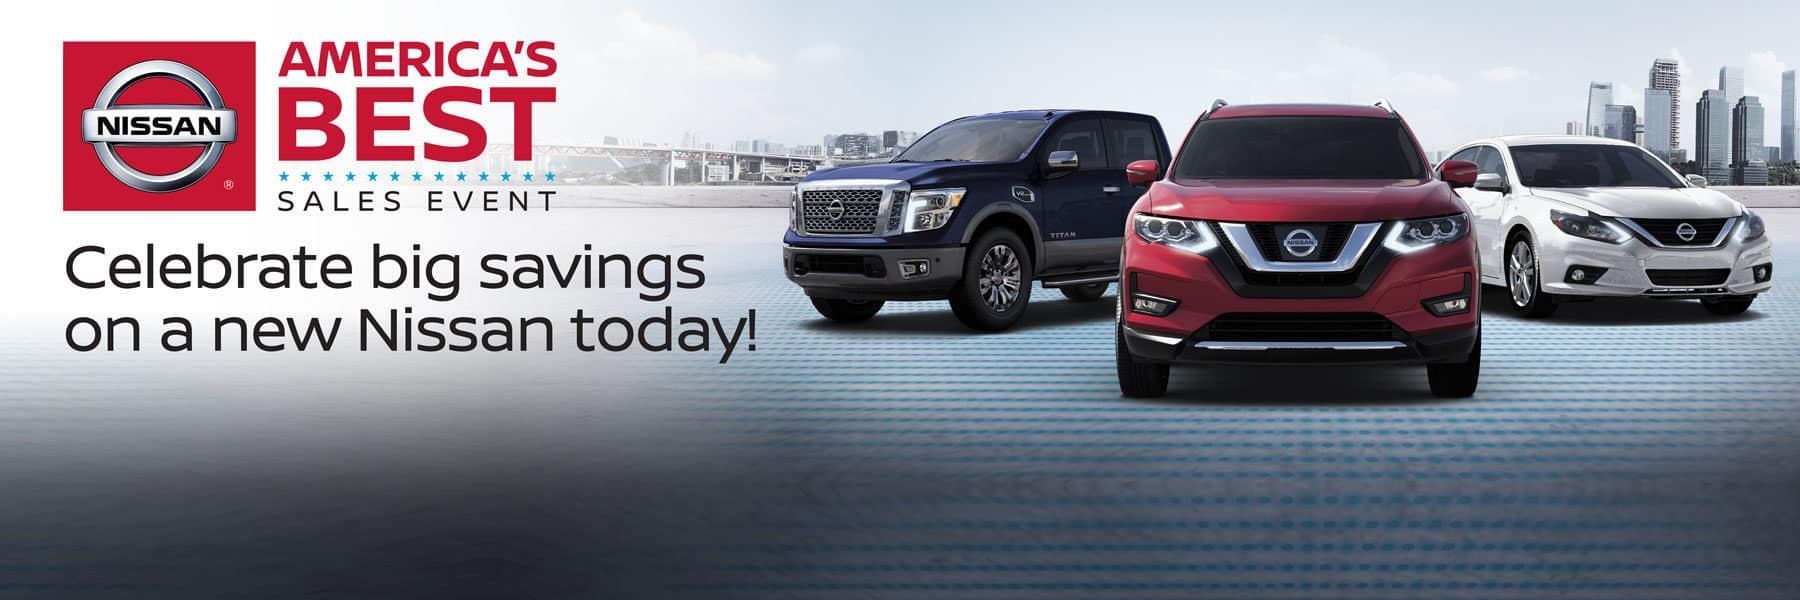 Celebrate BIG Savings on a New Nissan today during the America's Best Sales Event at Berman Nissan of Chicago!